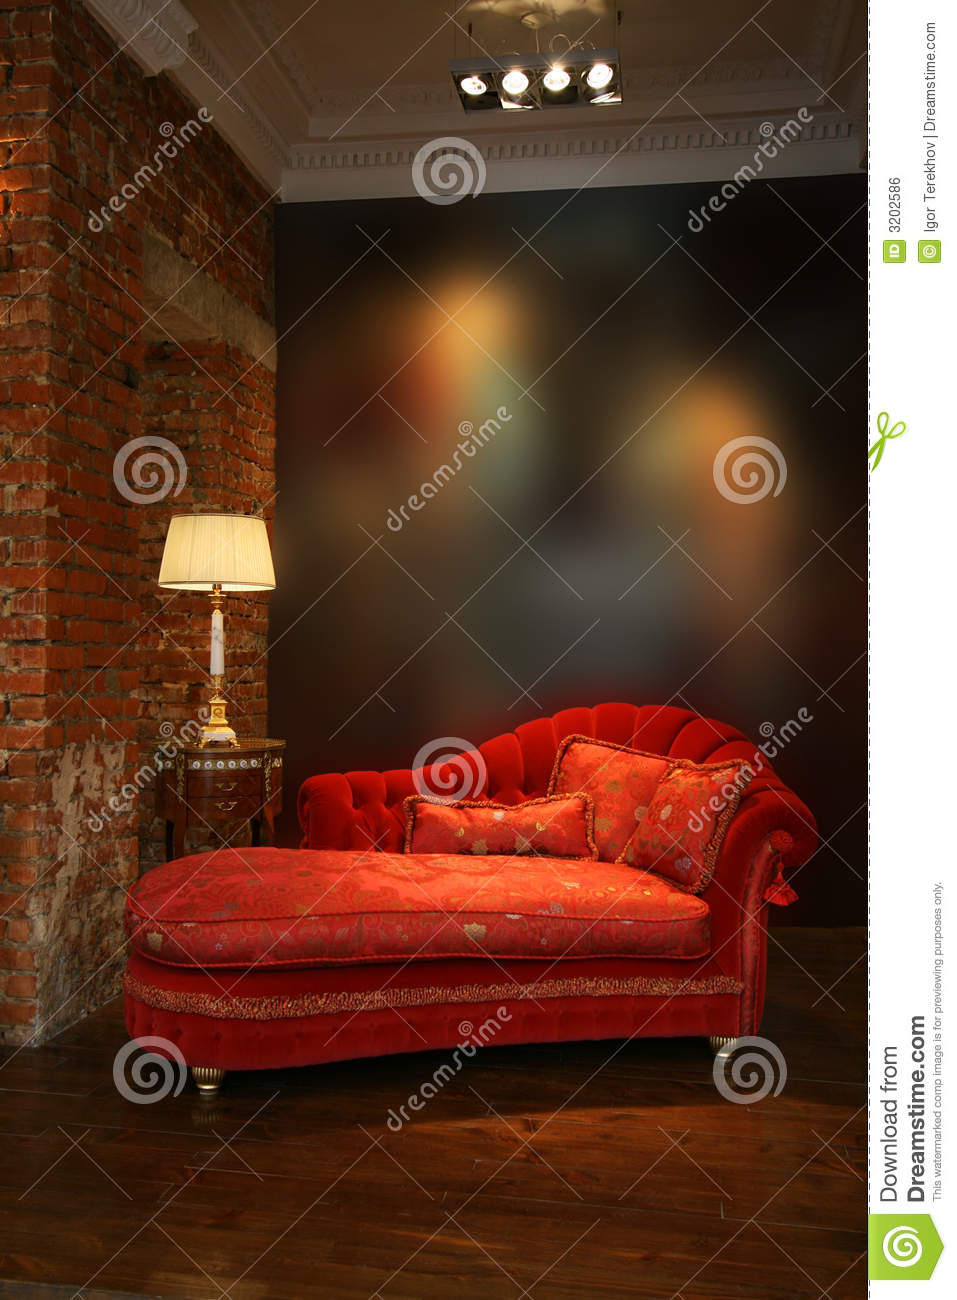 Red sofa and lamp